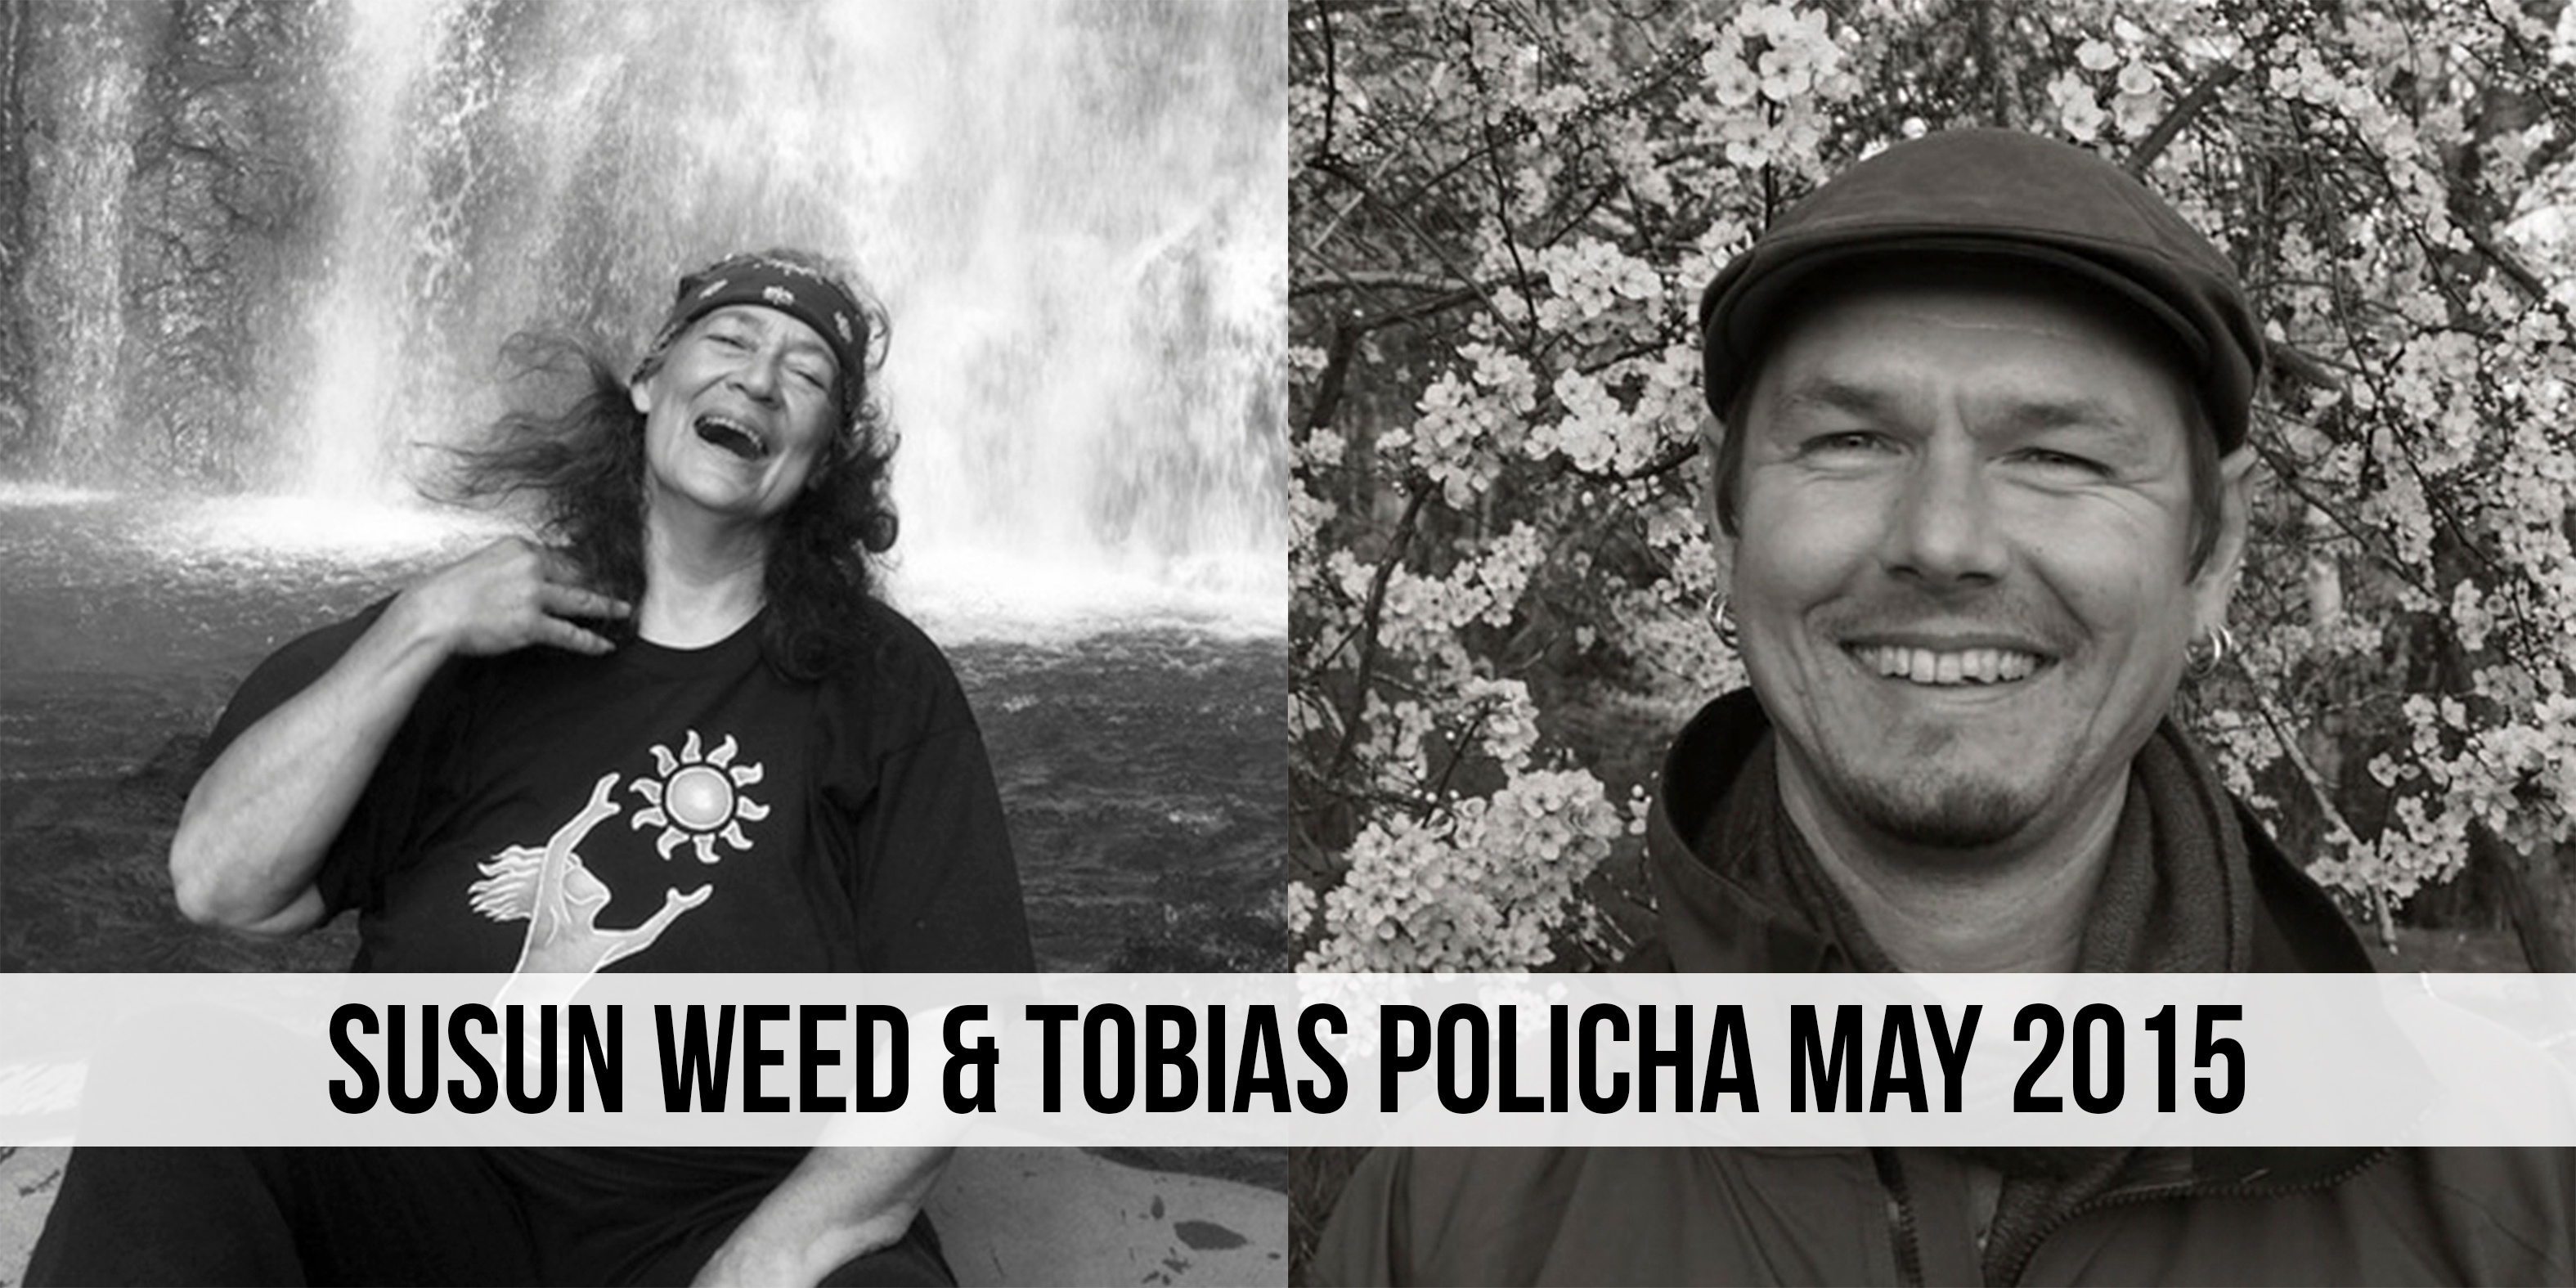 SusunWeed-Tovbias.jpg